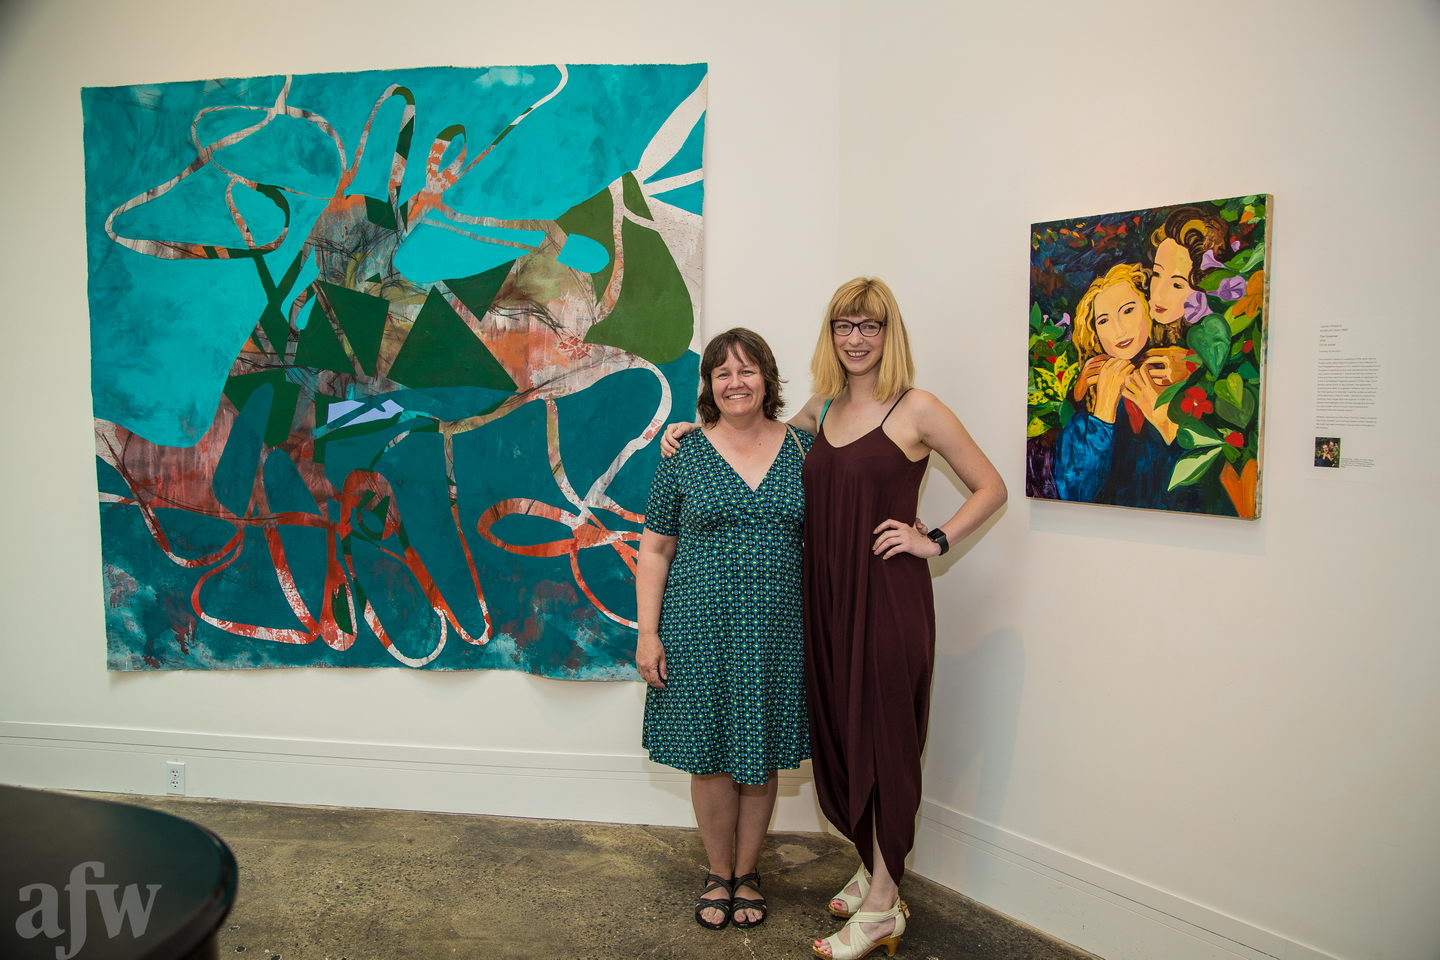 Pictured here with artist Lauren Whearty in front of our works at the opening.